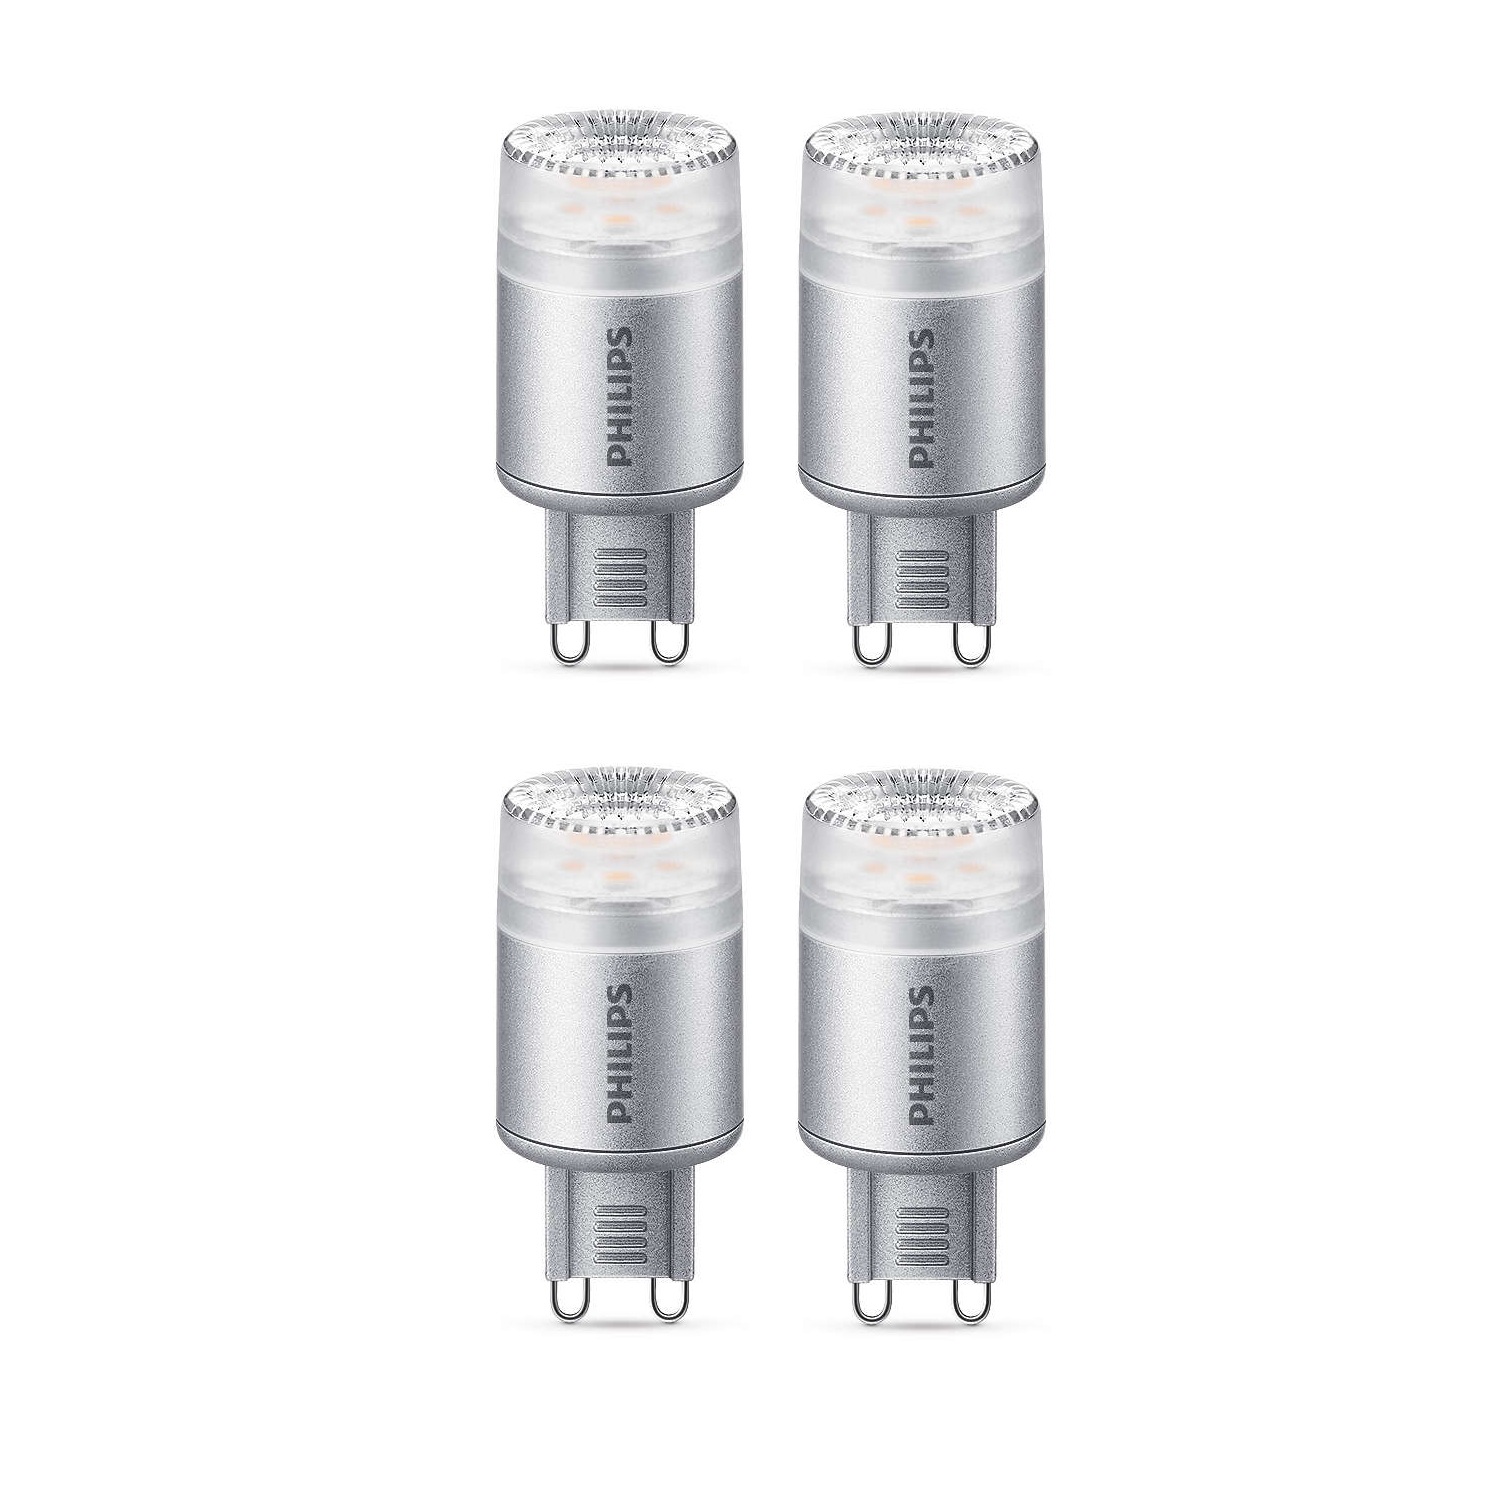 4x philips led 25w g9 dimmable capsule light bulb a 204lm 240v warm white 2700k ebay. Black Bedroom Furniture Sets. Home Design Ideas